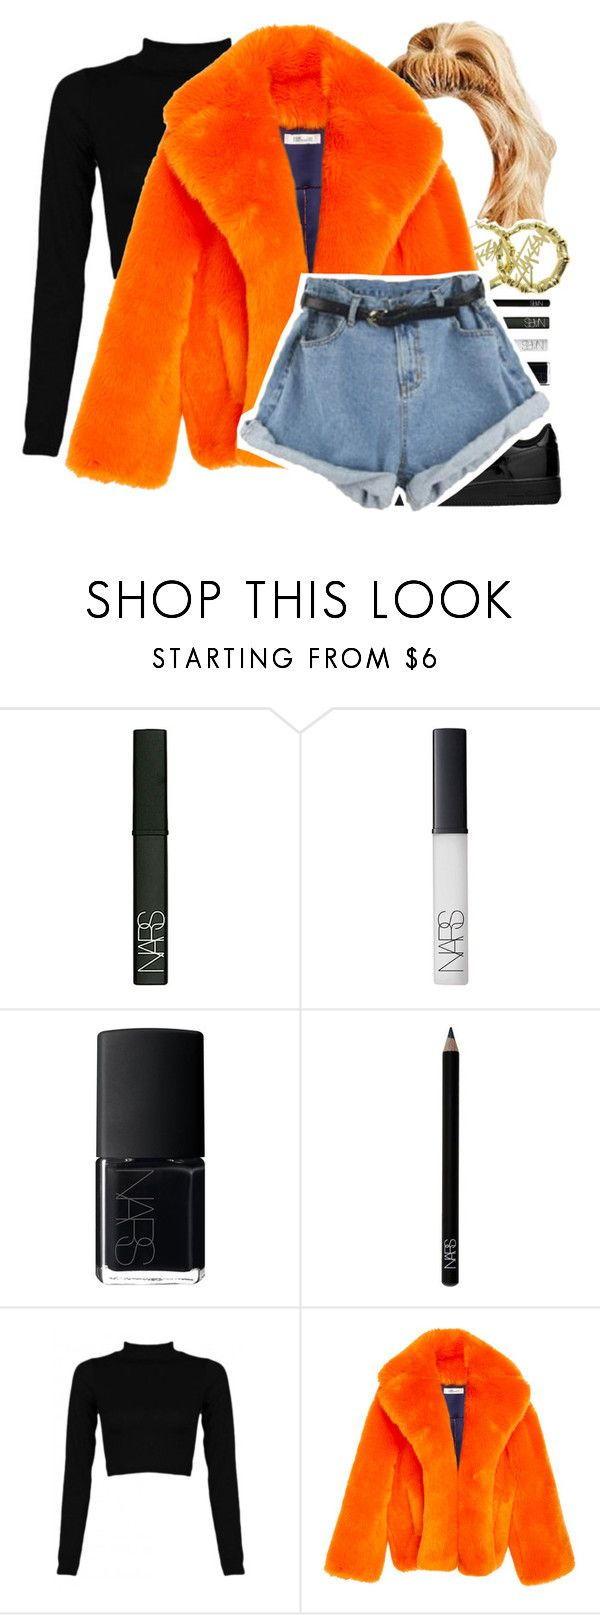 """""""G O O S E B U M P S"""" by girimadboy ❤ liked on Polyvore featuring NARS Cosmetics, Stussy and NIKE"""